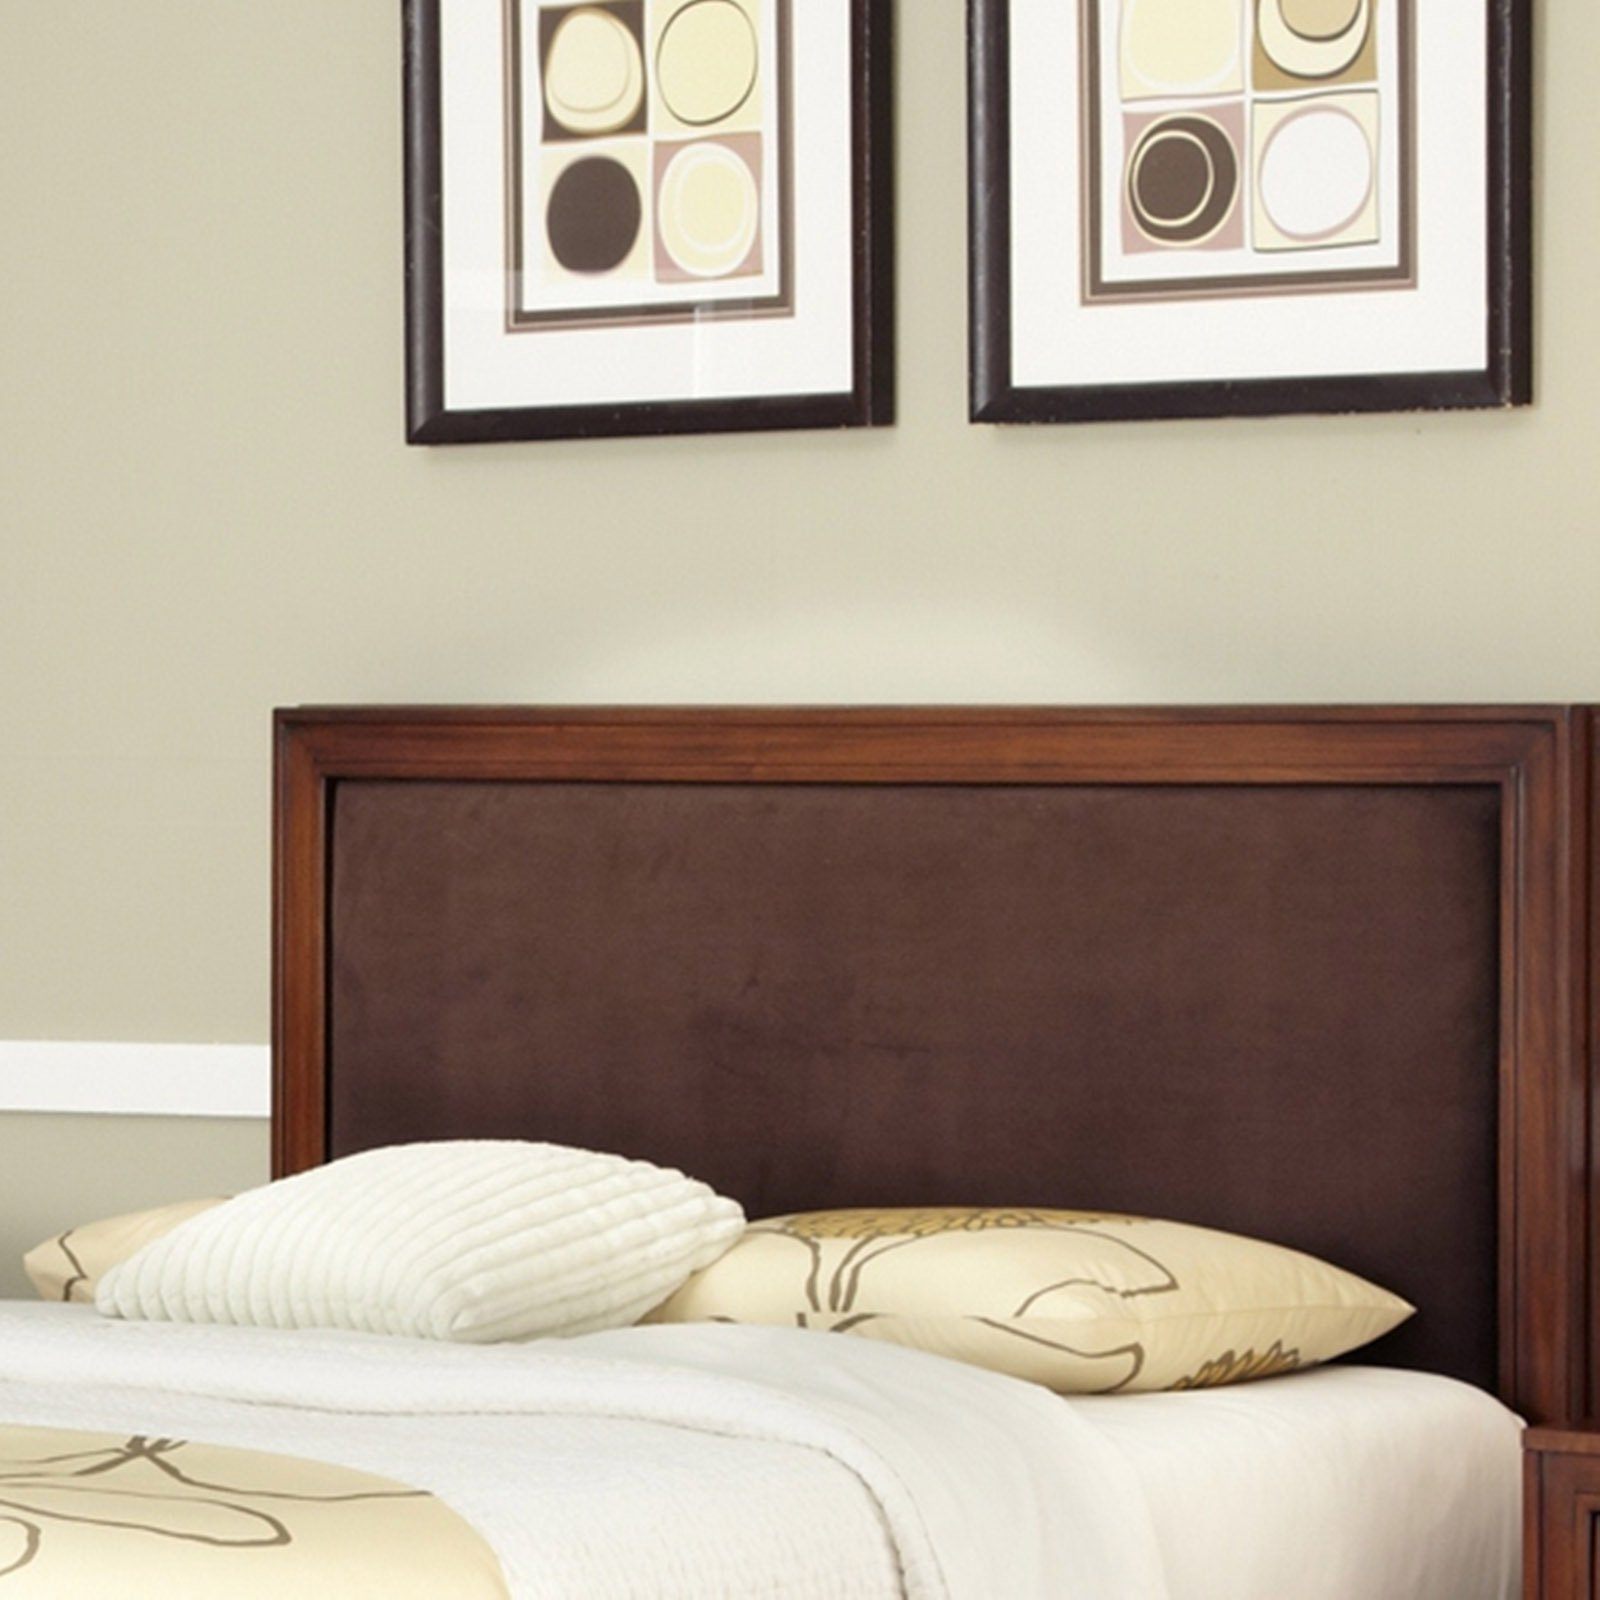 Home Styles Duet King/California King Panel Headboard with Brown Microfiber Inset, Rustic Cherry